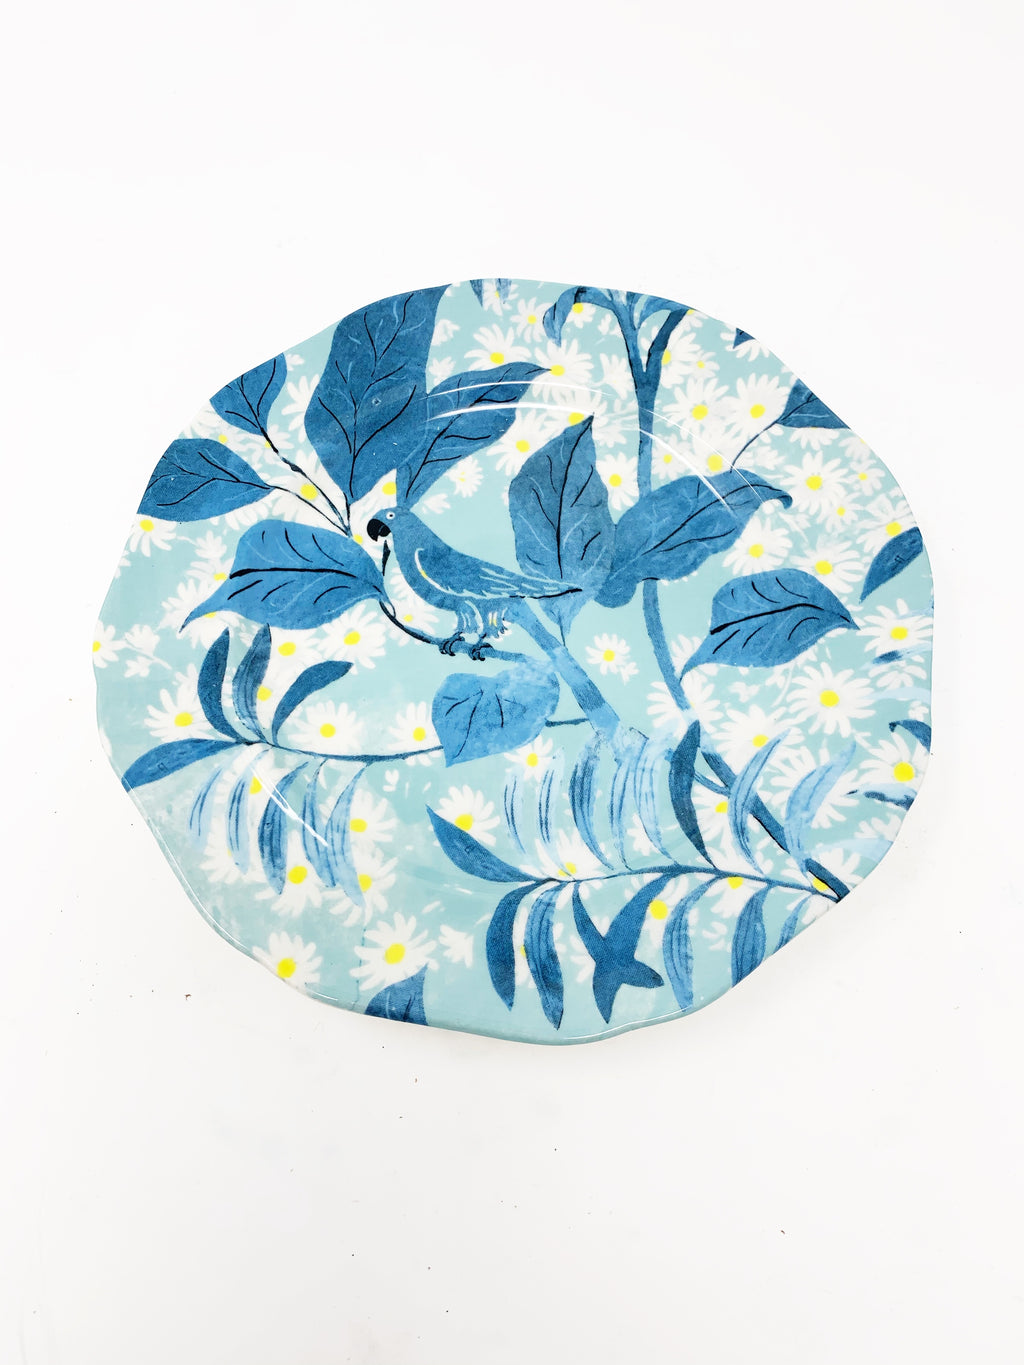 Anthropologie Paul Marrot Française Dessert Plate Set of 4, Blue Parrot